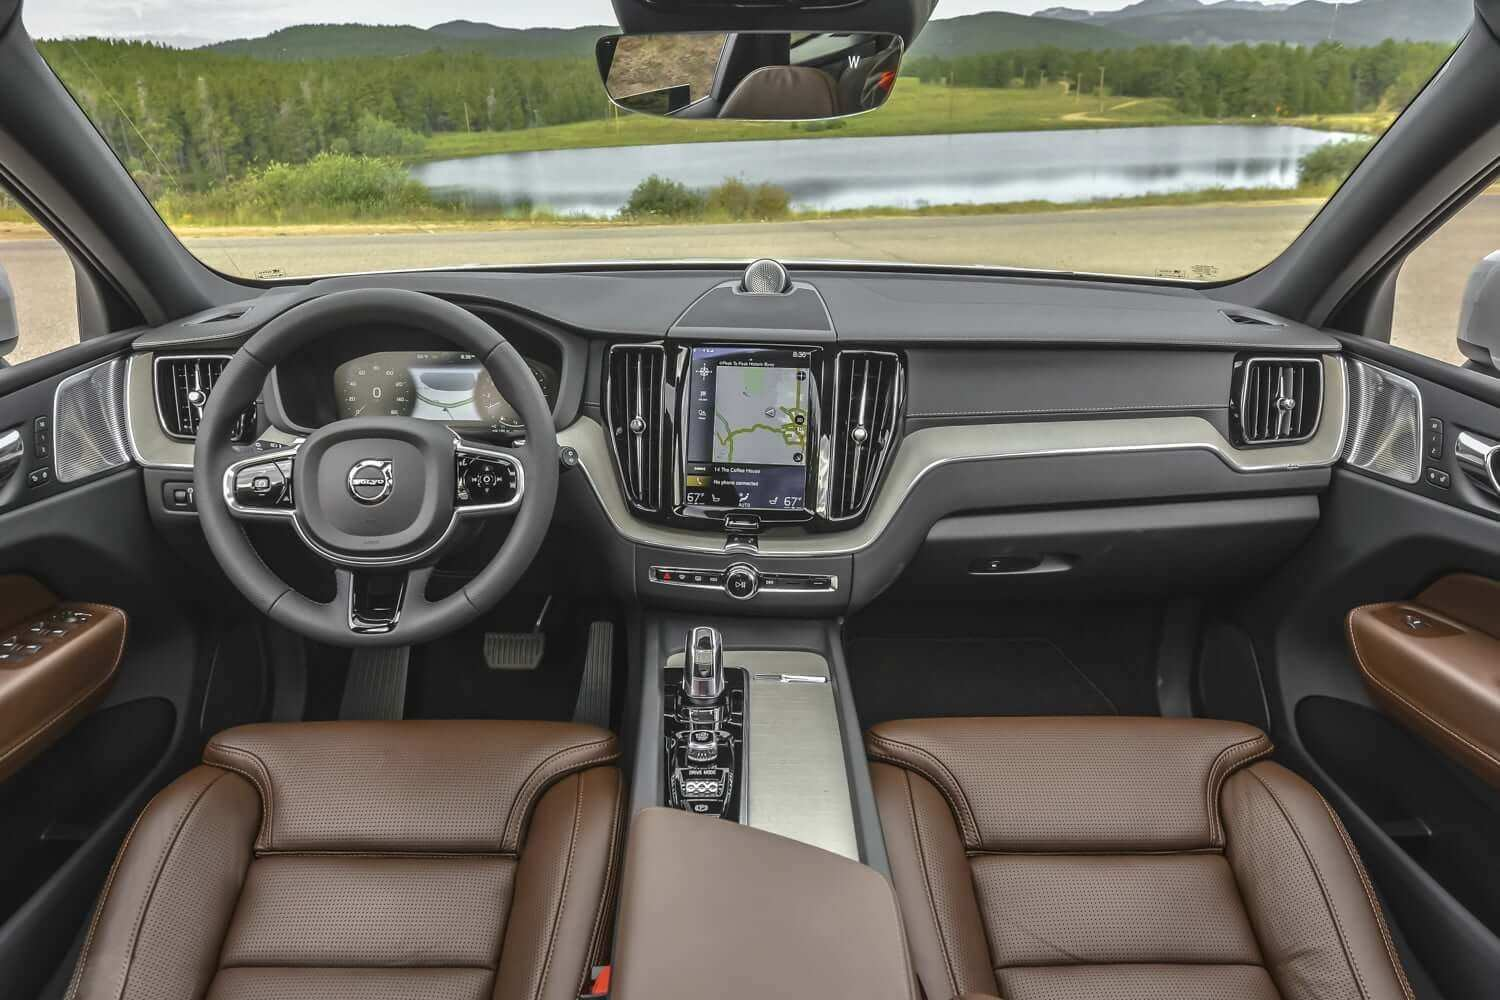 45 All New Volvo V40 2020 Interior Picture for Volvo V40 2020 Interior